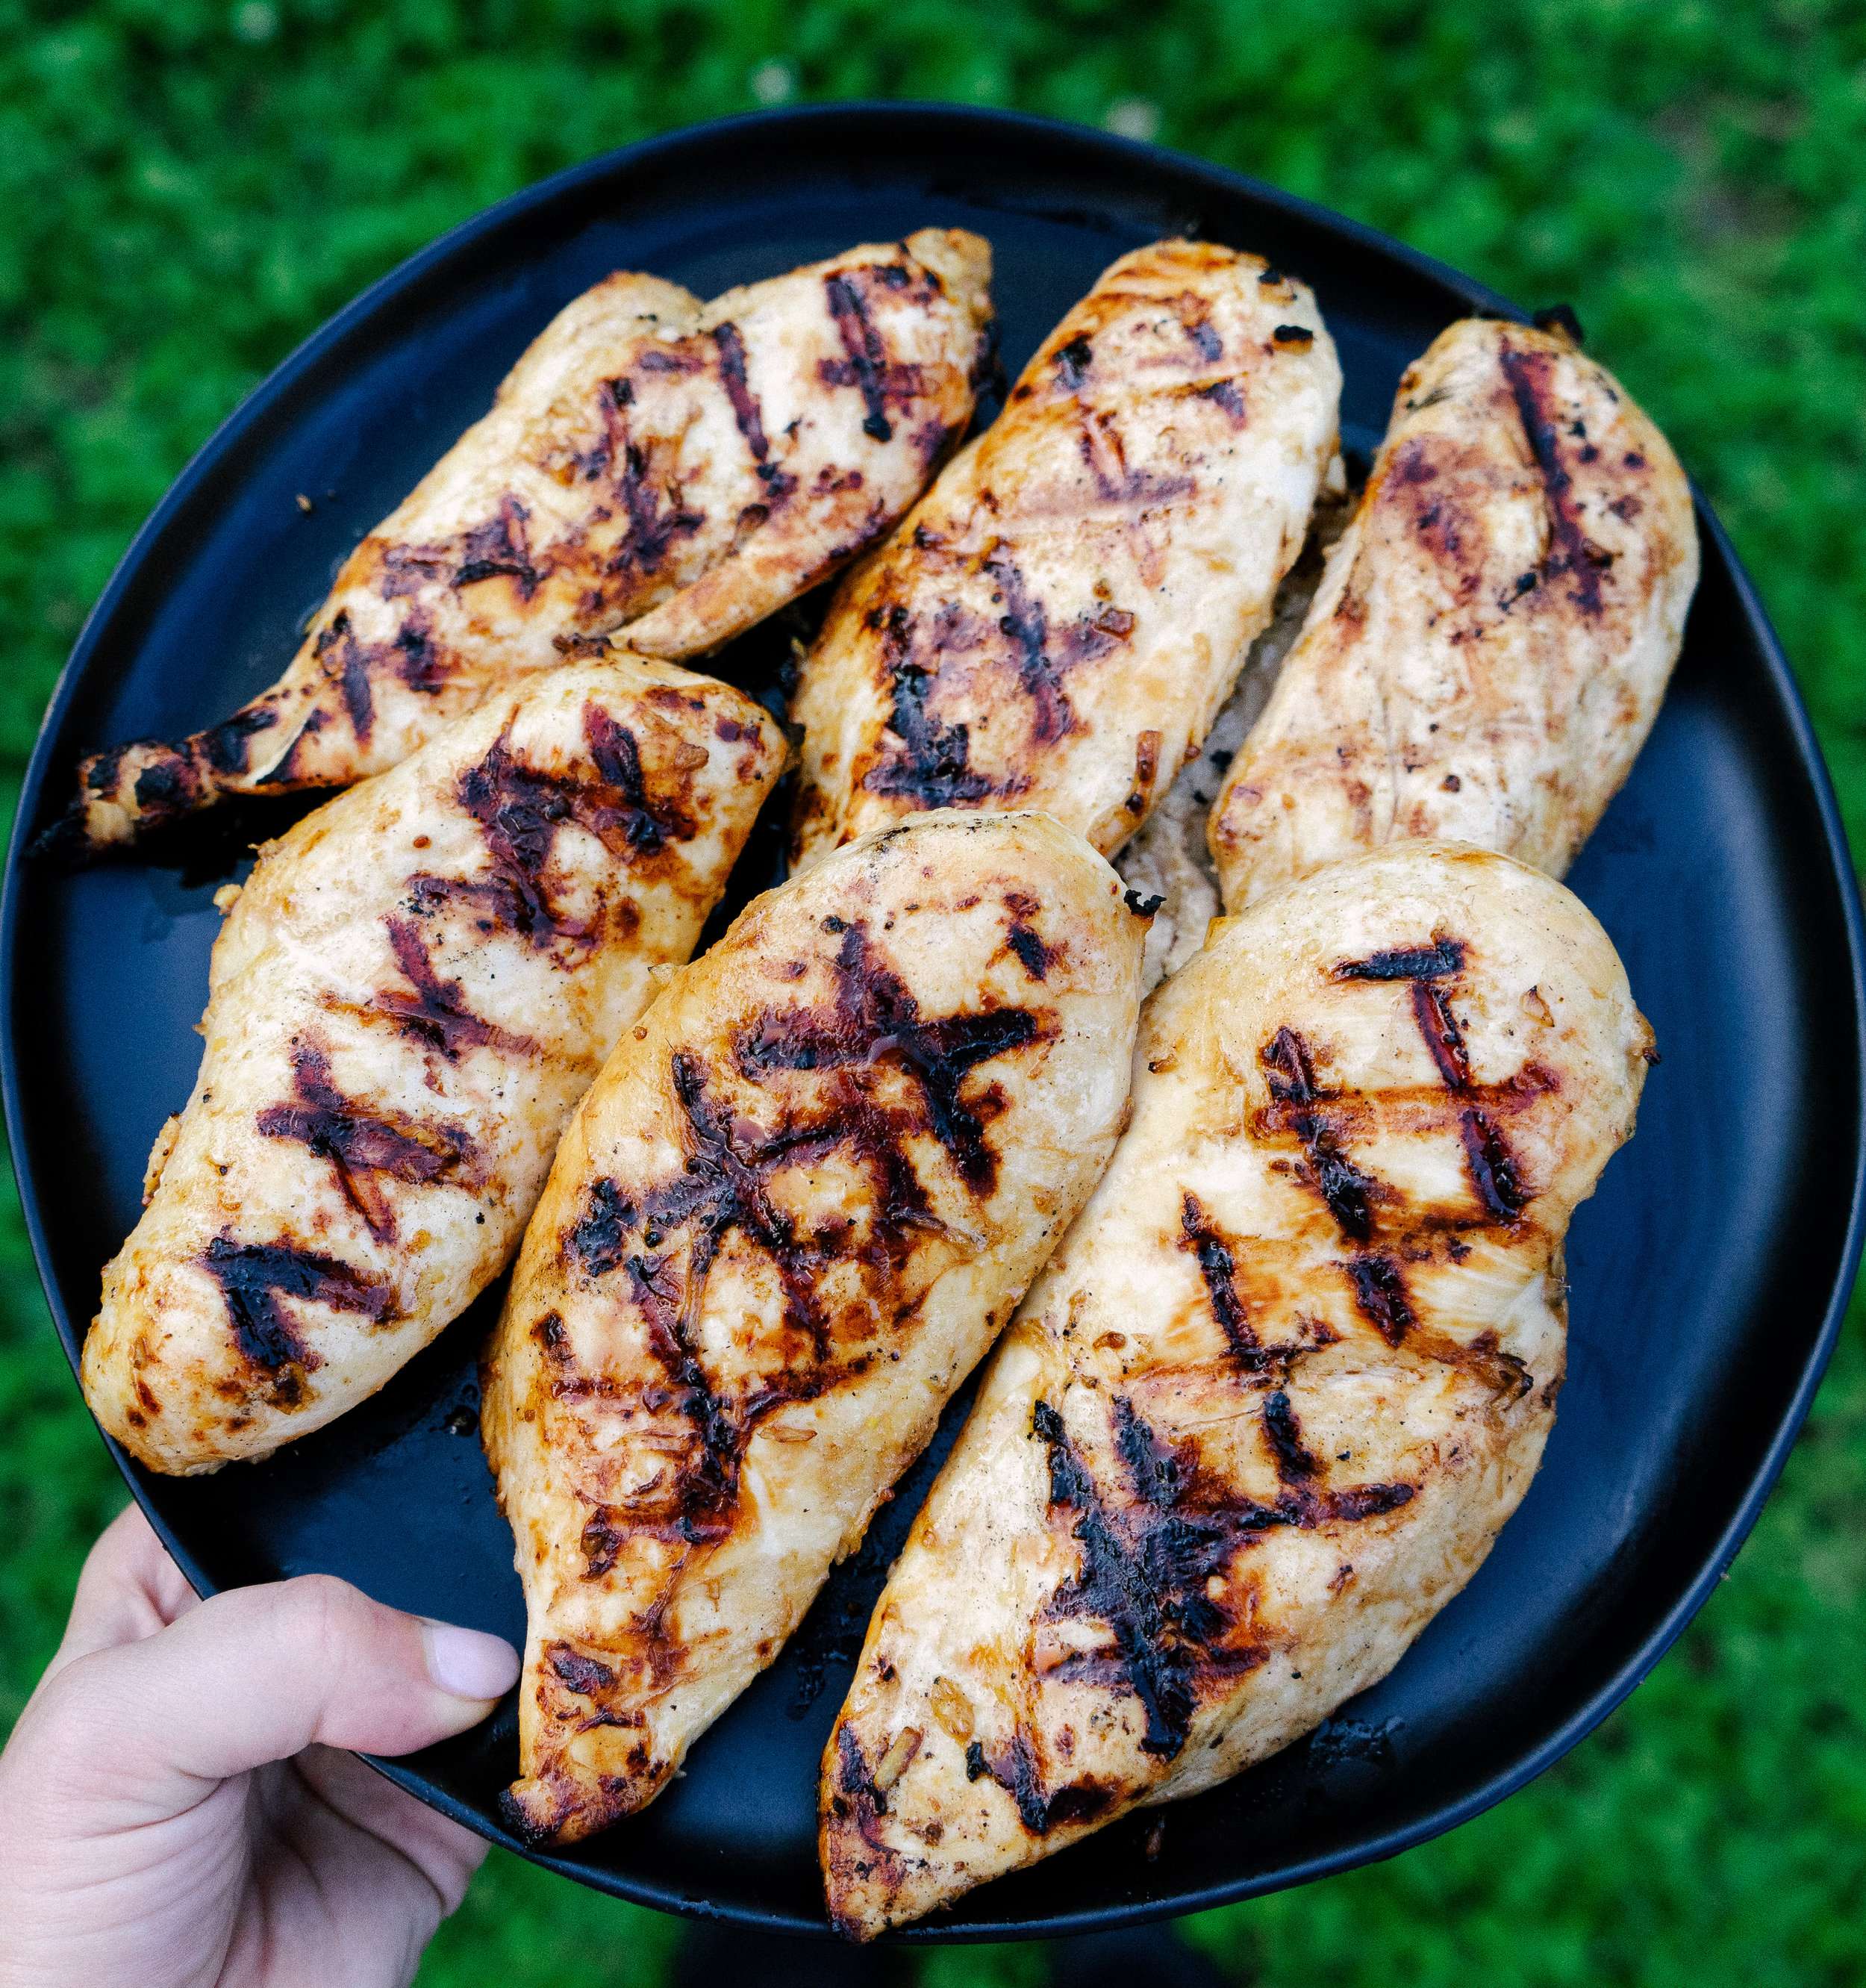 10 Low Carb Backyard Barbecue Recipes to help you gather some ideas for family summer holidays and backyard barbecues. These are easy recipes that help you find a healthy, low carb recipes that's not just burgers and fries.